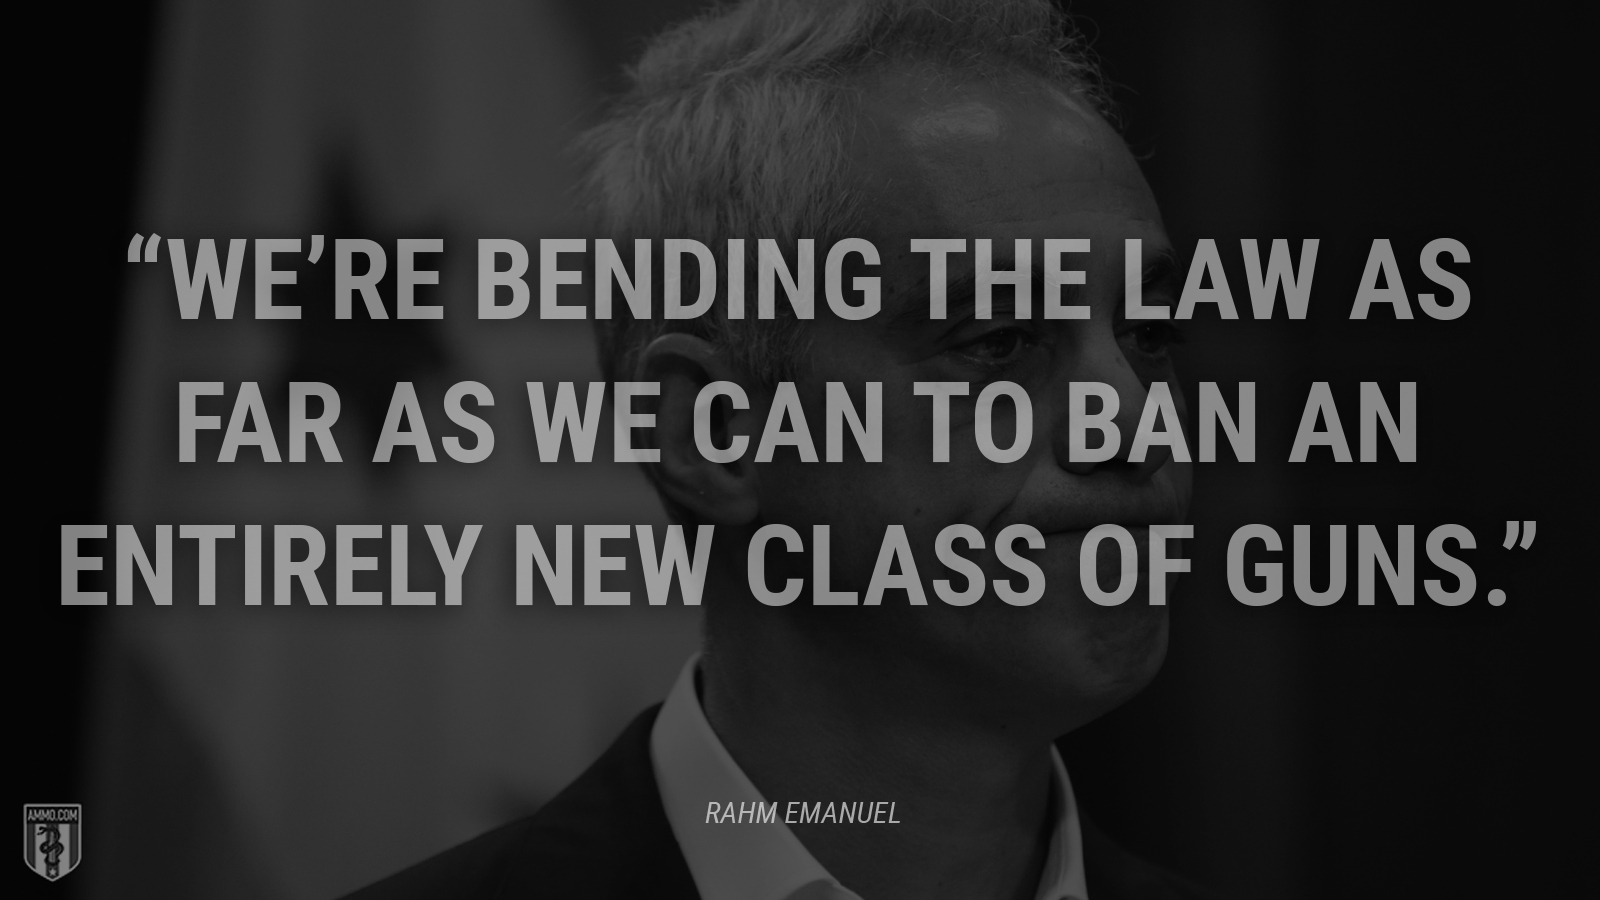 """We're bending the law as far as we can to ban an entirely new class of guns."" - Rahm Emanuel"